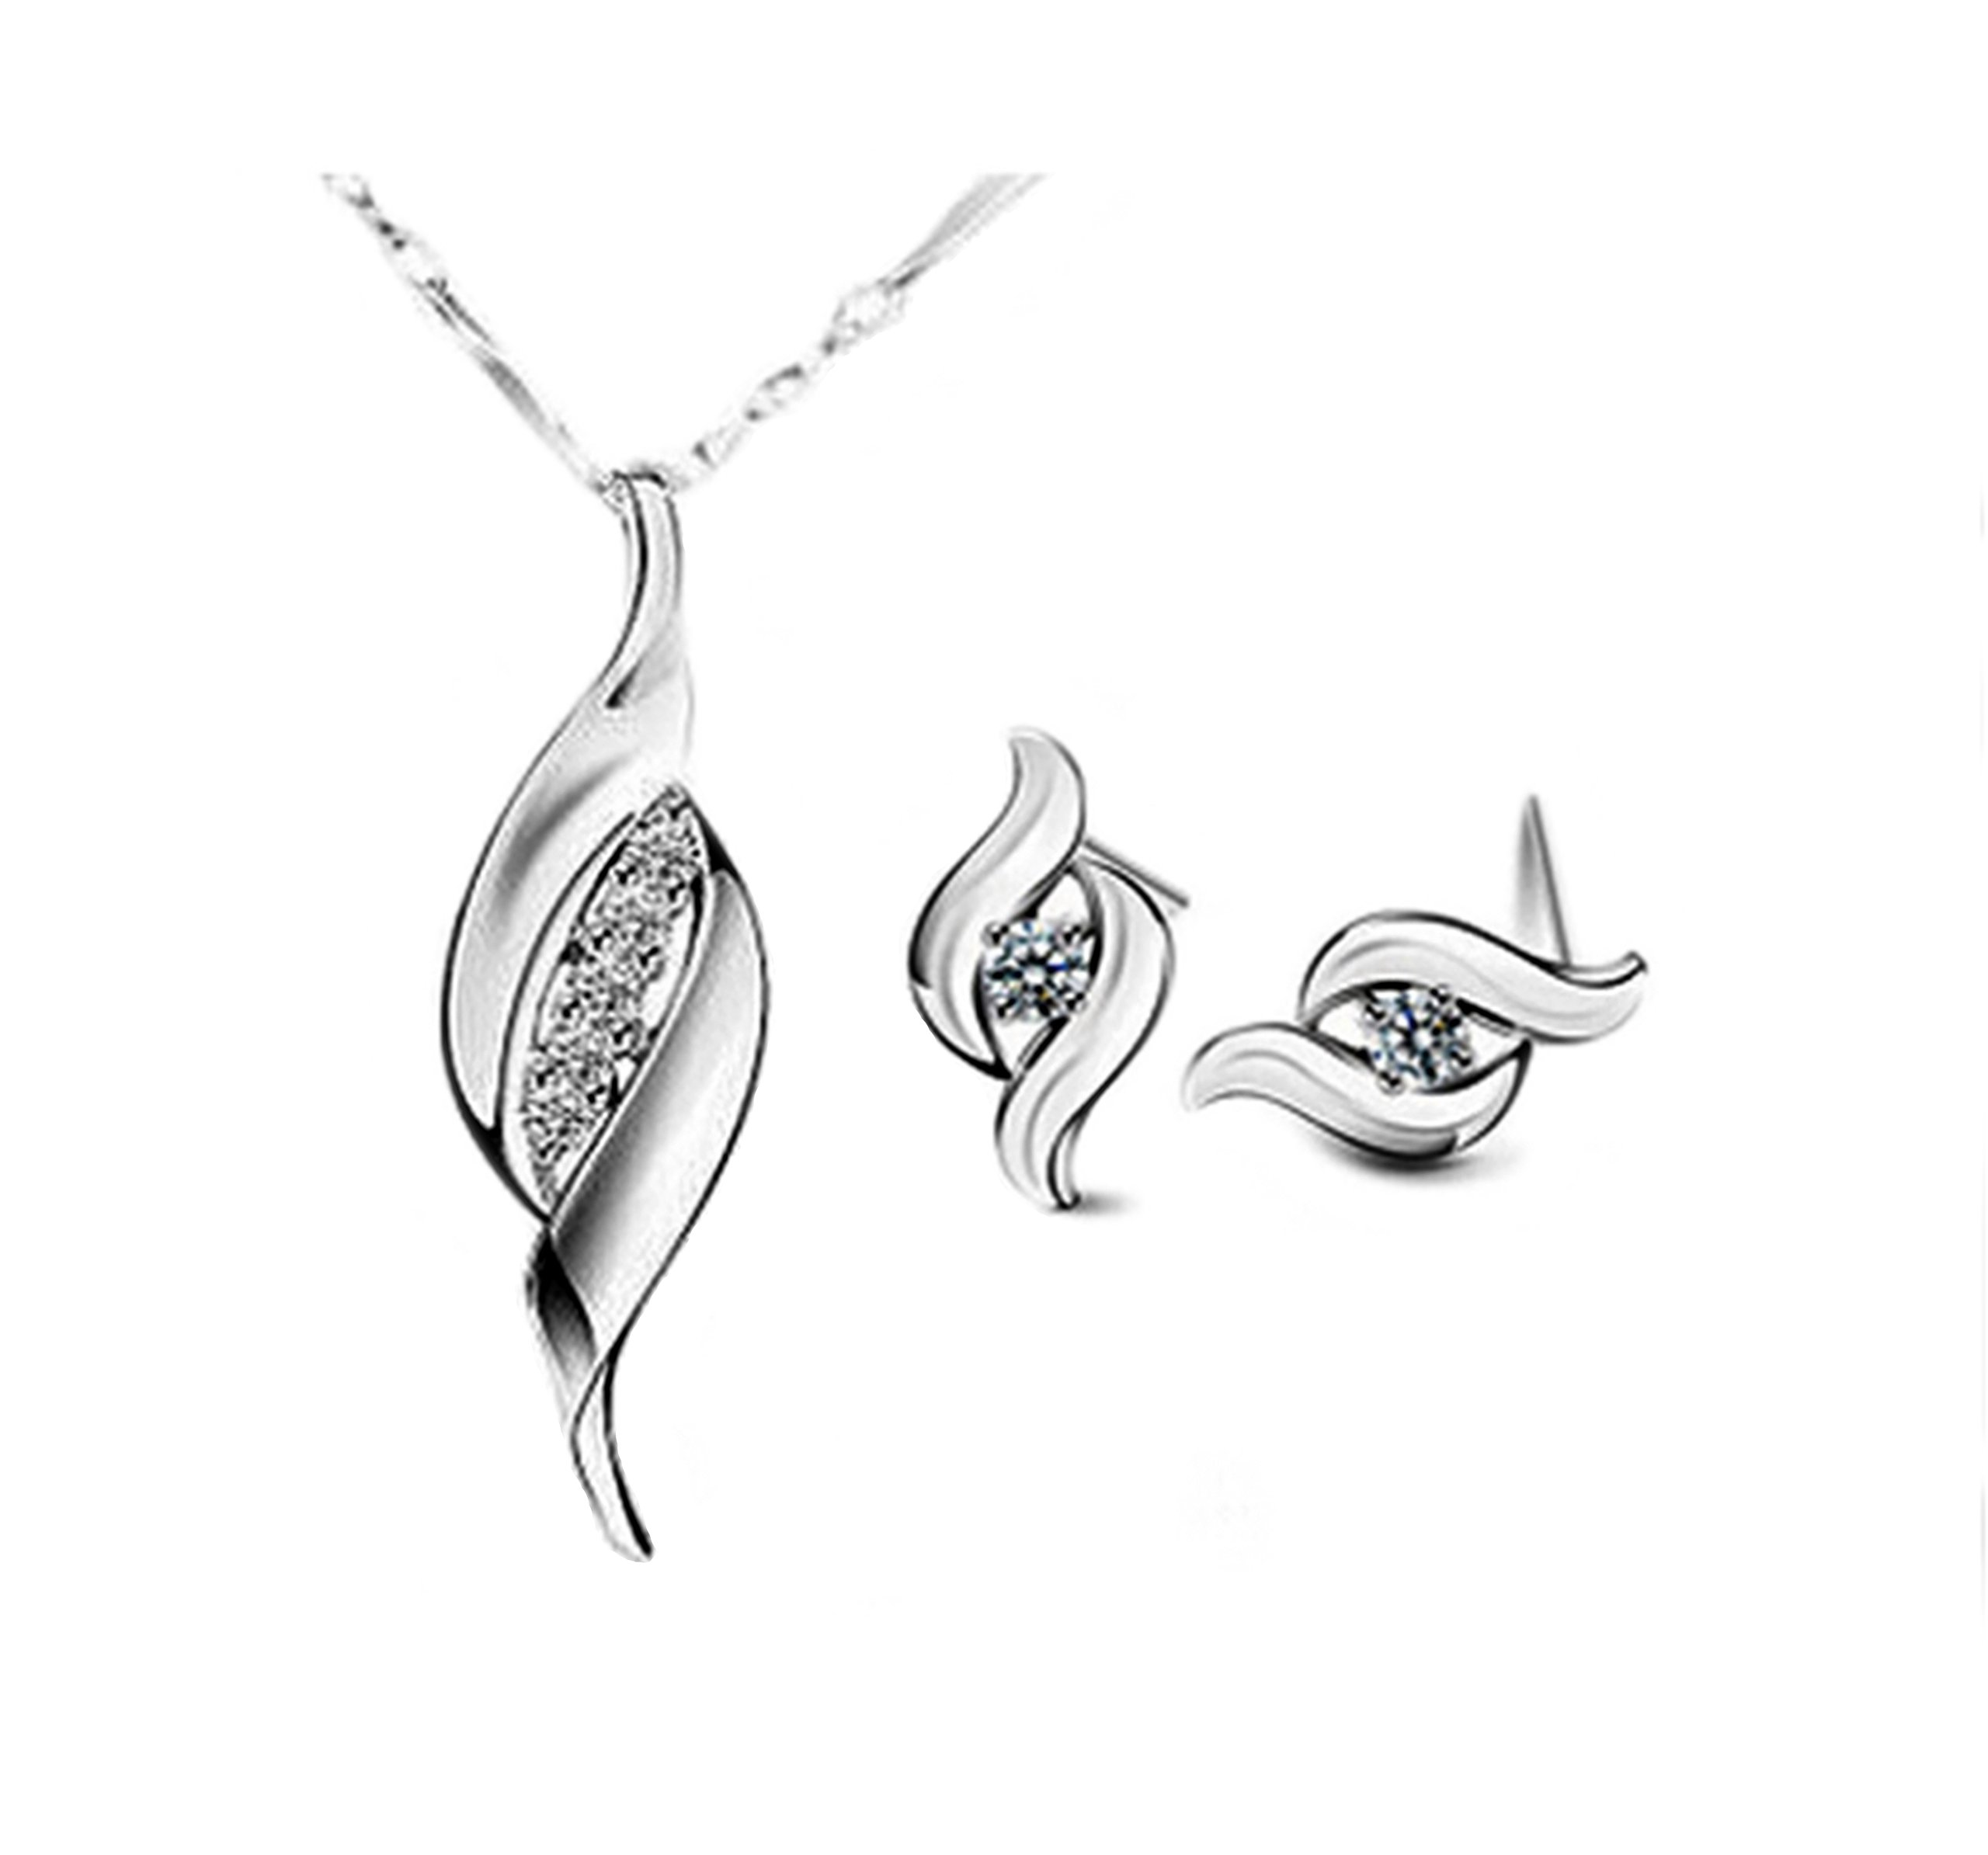 Bridal Jewelry 5.2 Ct Simulated White Topaz Sapphire Diamond Sterling Silver Earrings Pendant Necklace Set -Great Christmas Birthday Anniversary Mothers Day Wedding Gift for Her Women Girls Teens